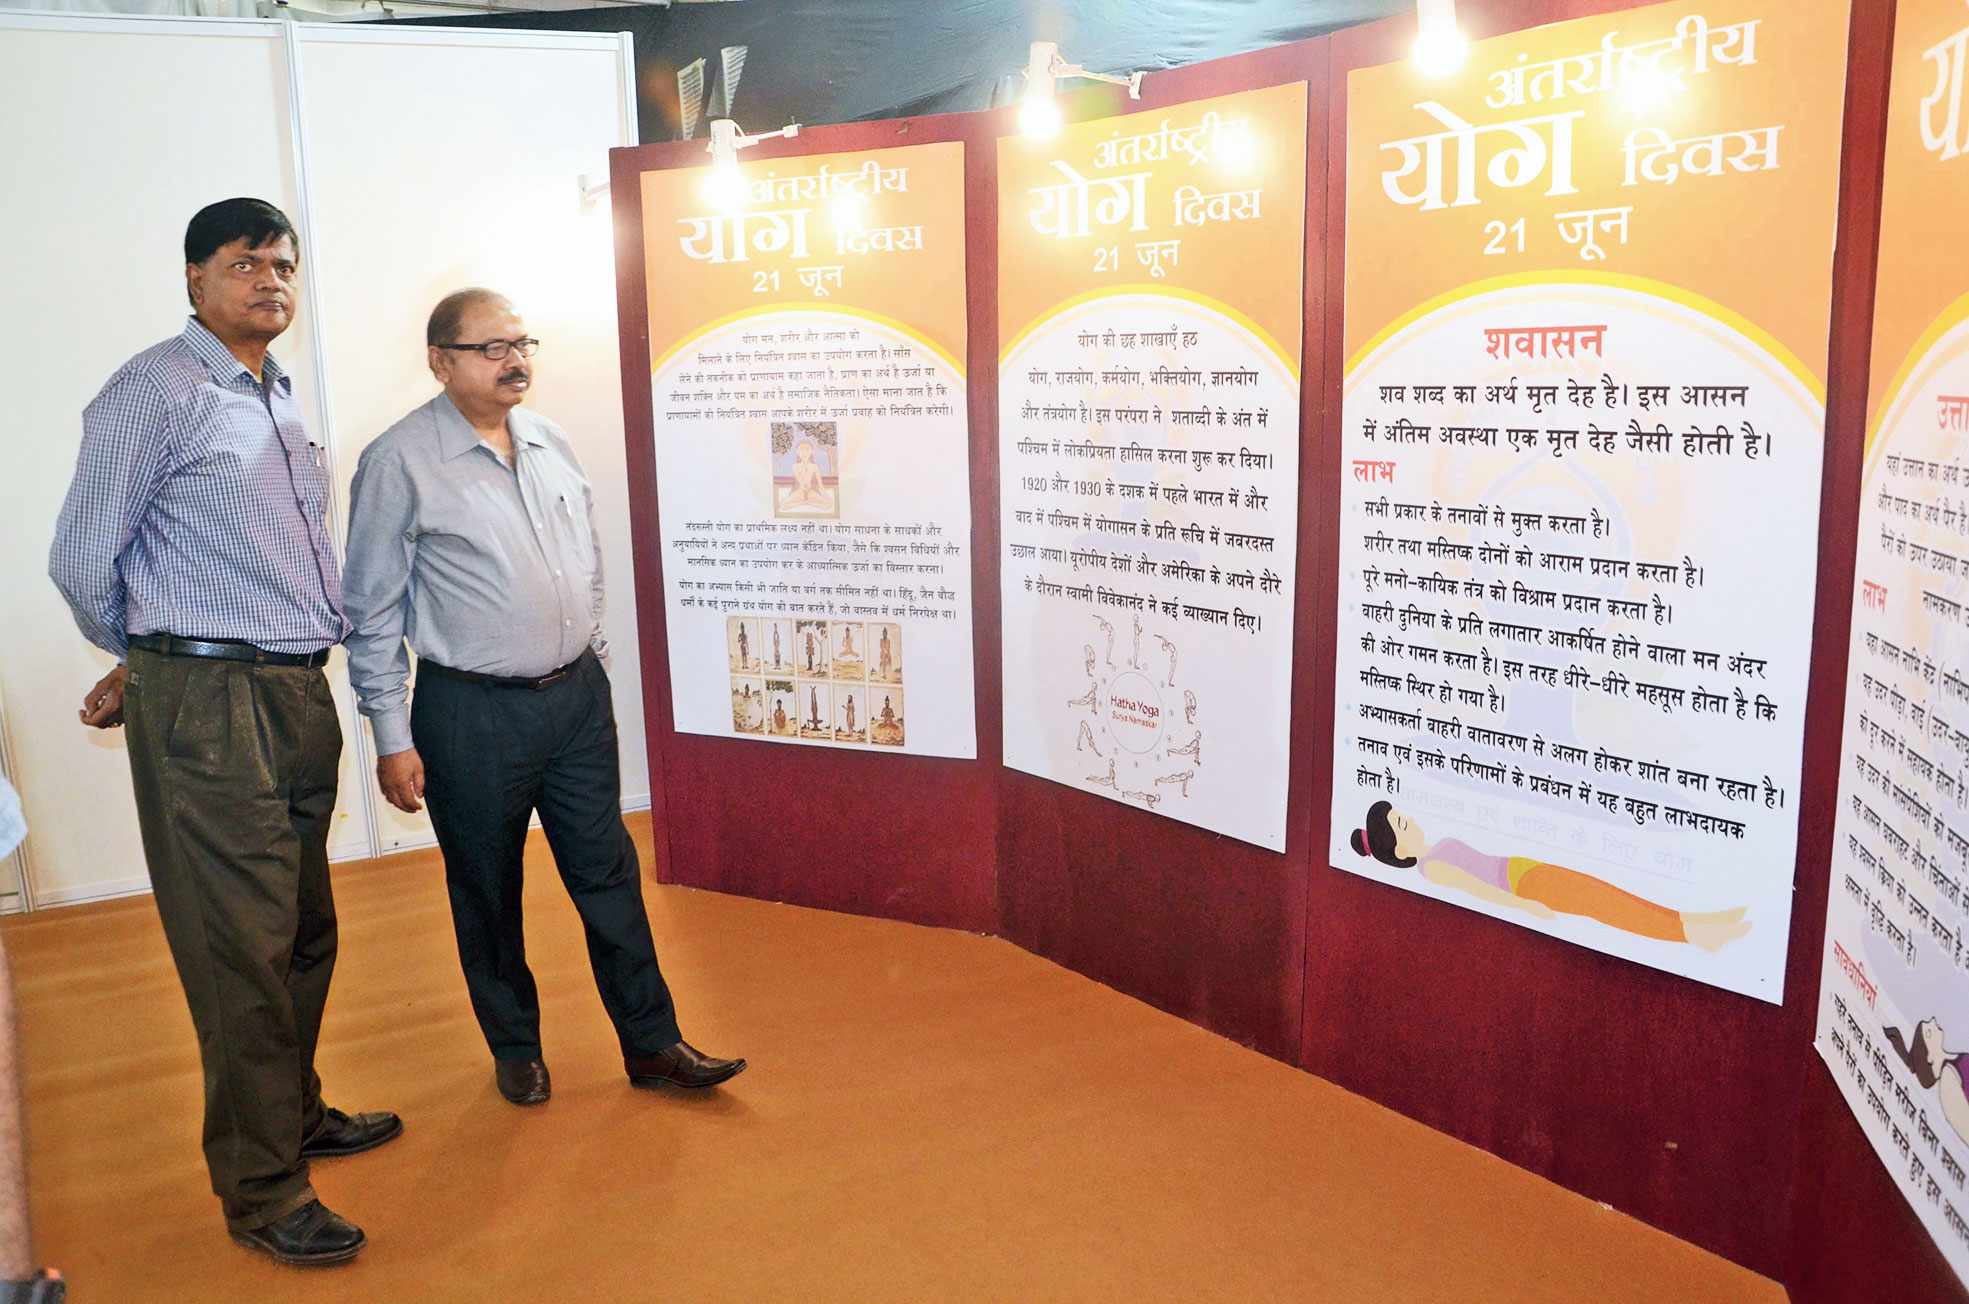 HEC CMD MK Saxena (right) at the yoga exhibition at Assembly grounds in Ranchi on Thursday.